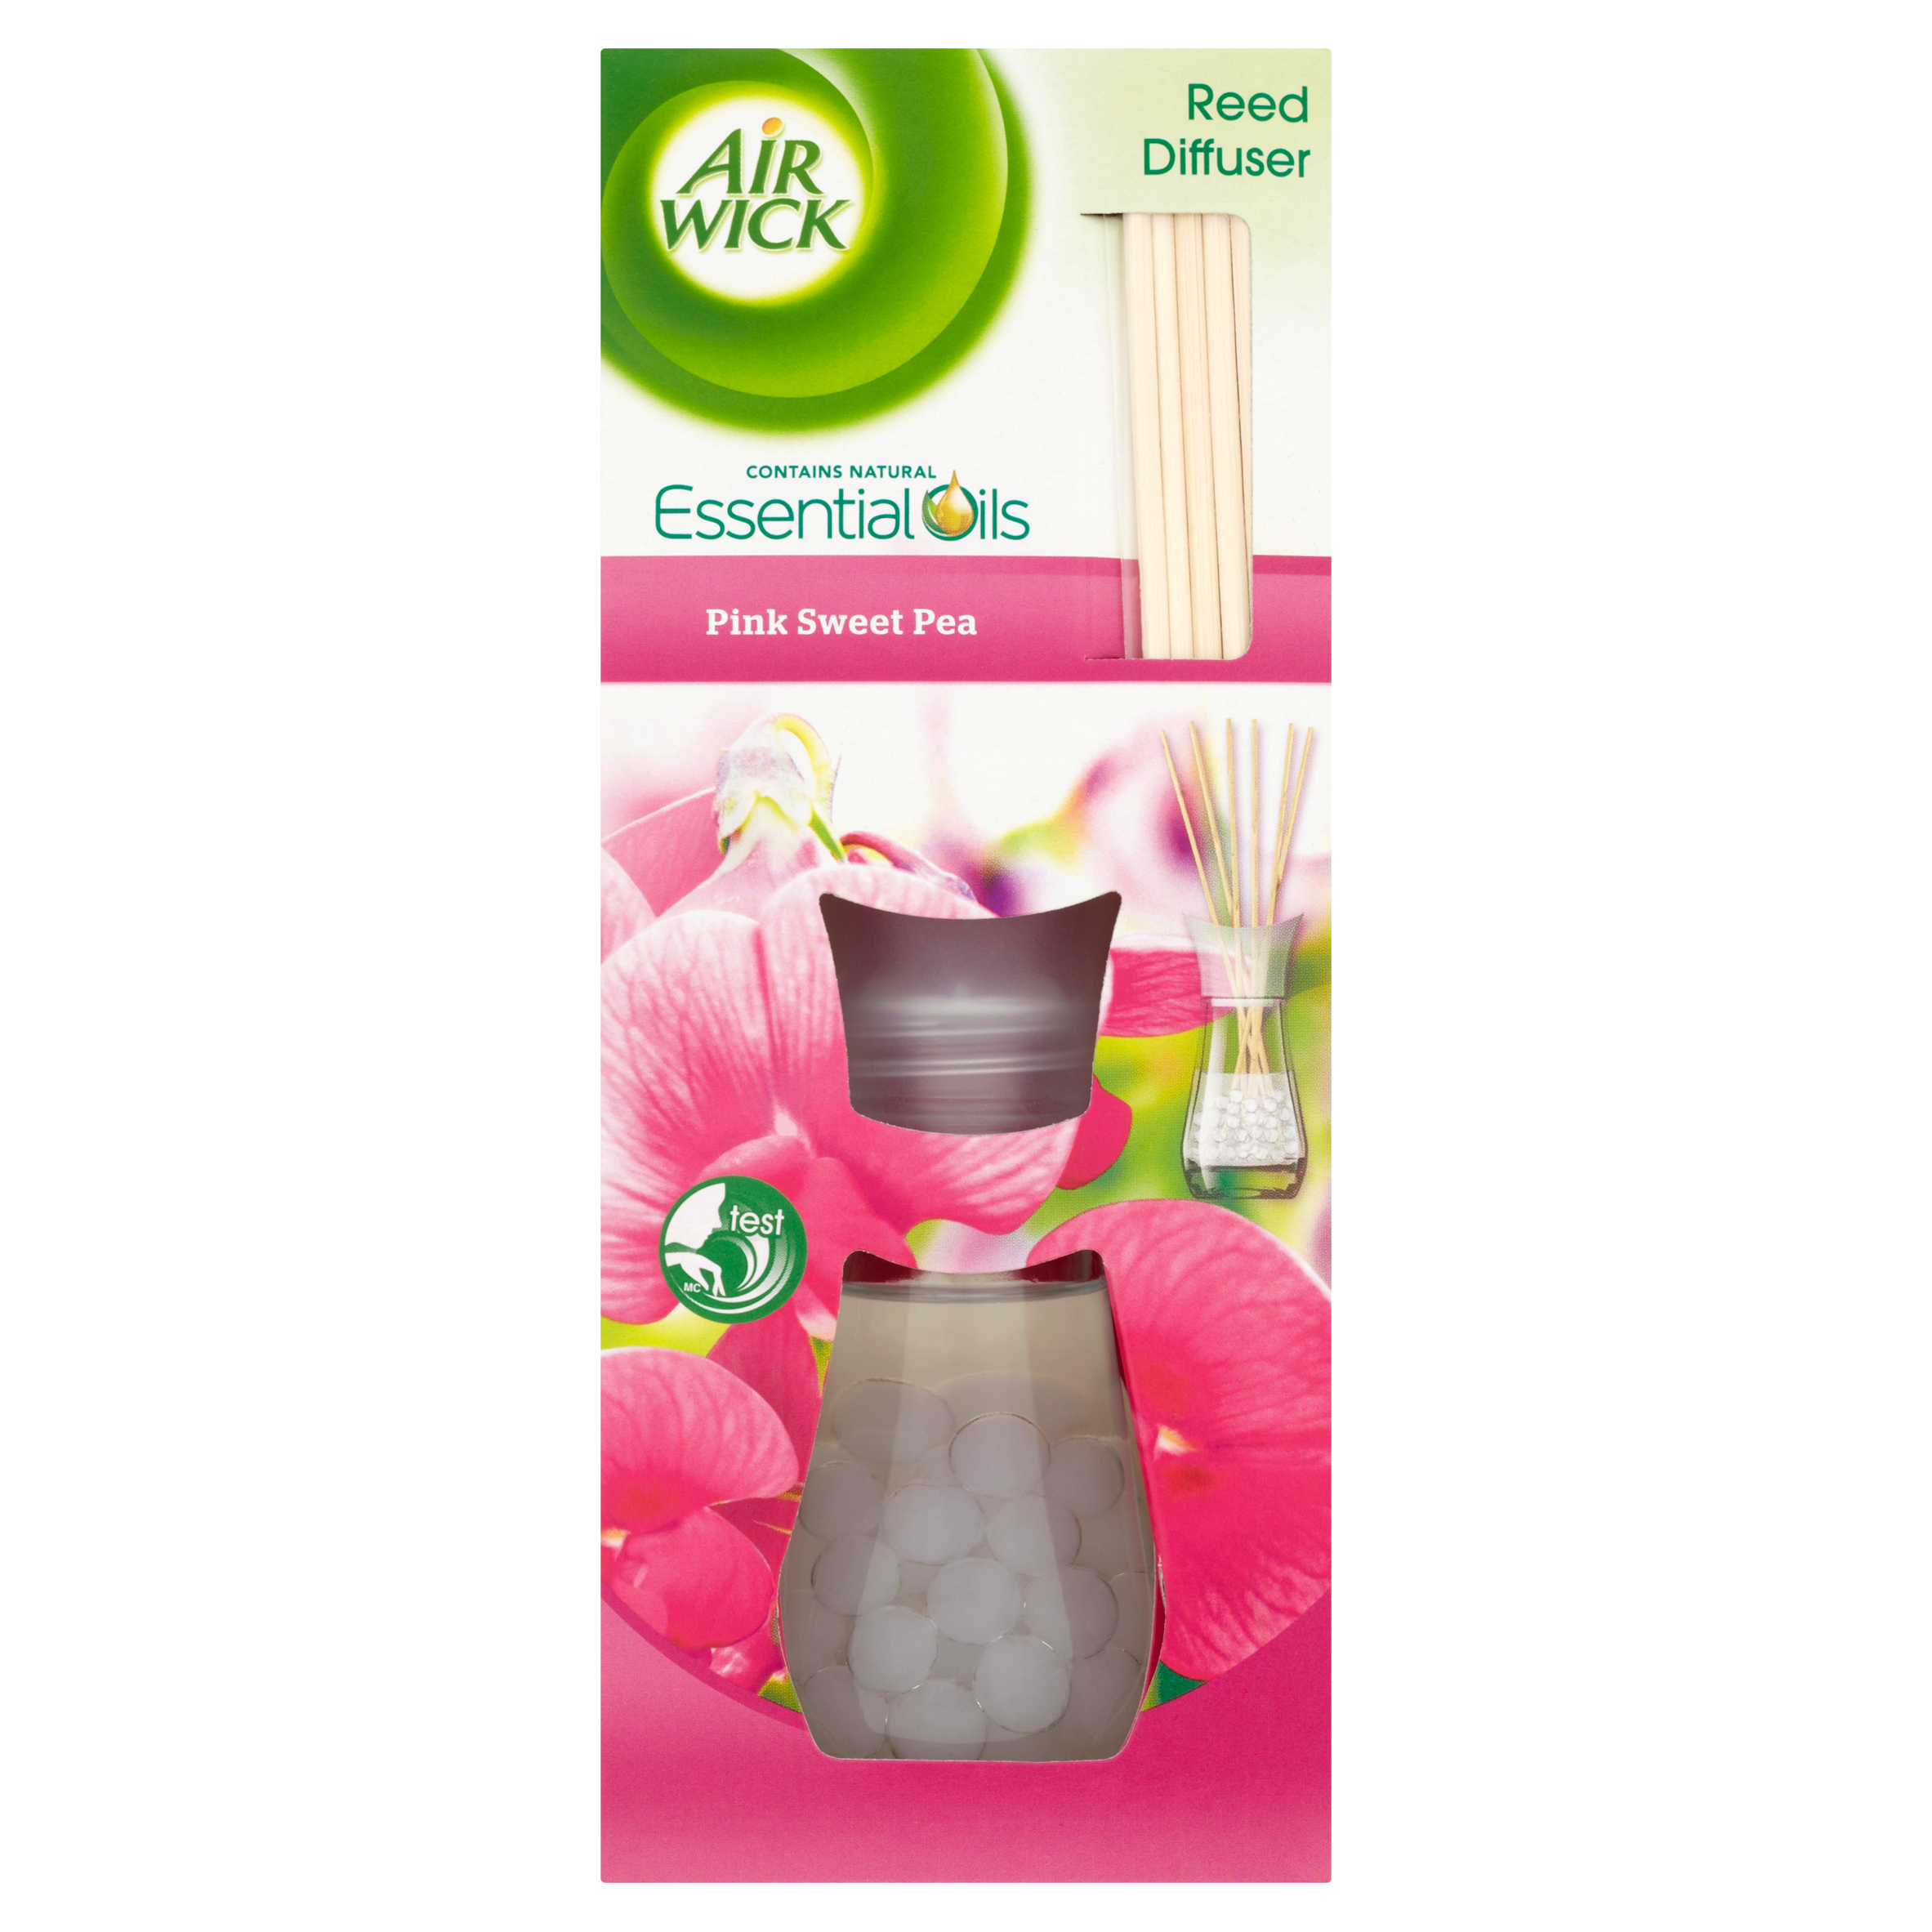 Air Wick 174 Reed Diffuser Pink Sweet Pea